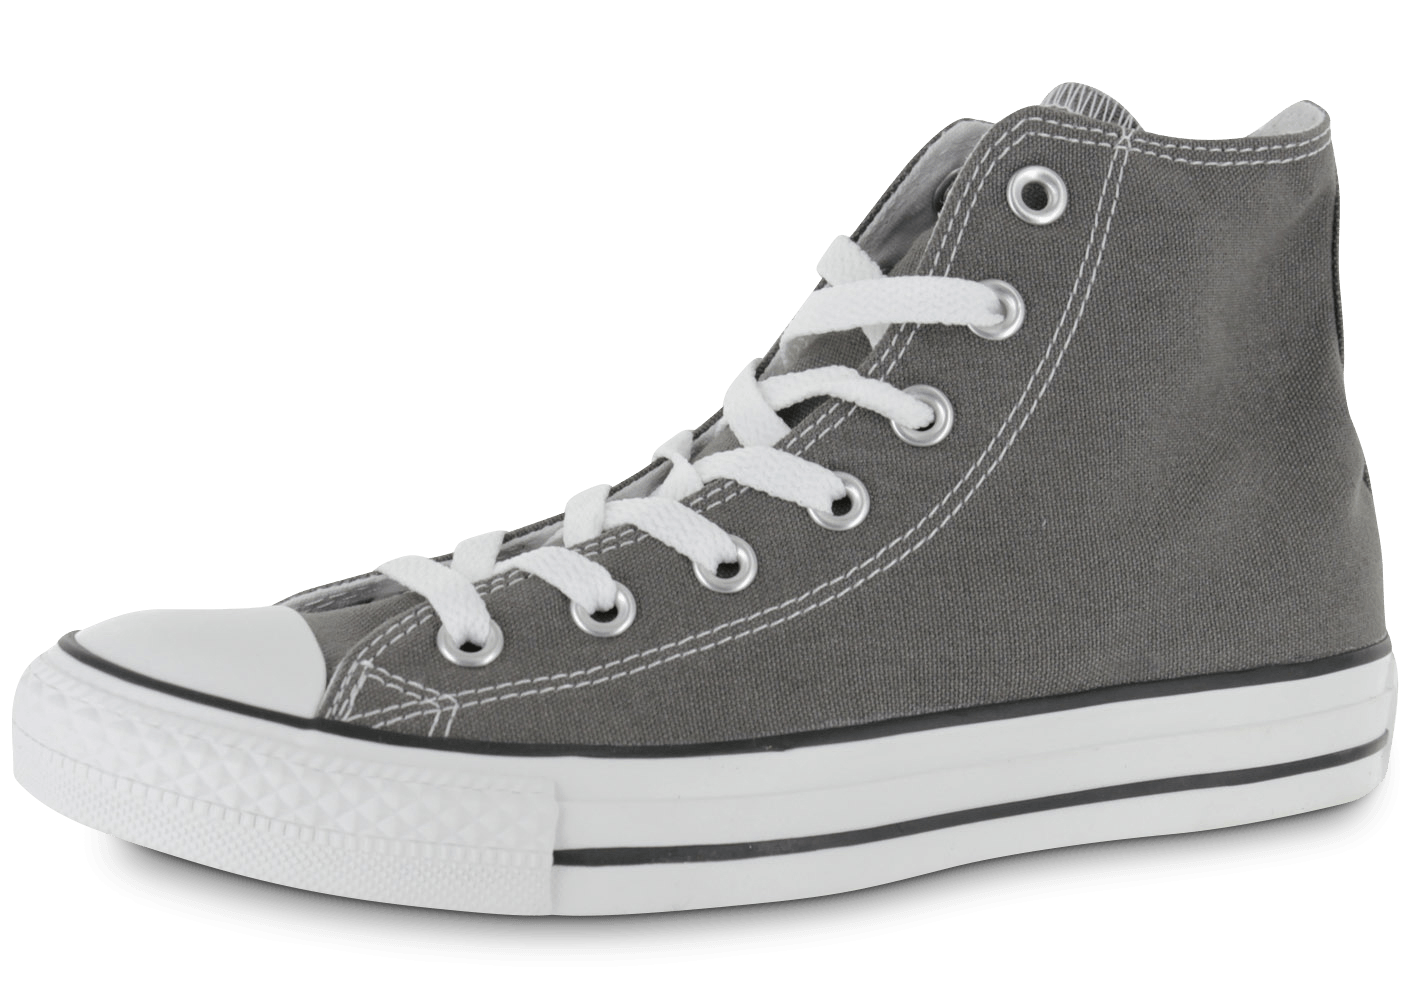 converse chuck taylor all star hi grise chaussures femme chausport. Black Bedroom Furniture Sets. Home Design Ideas